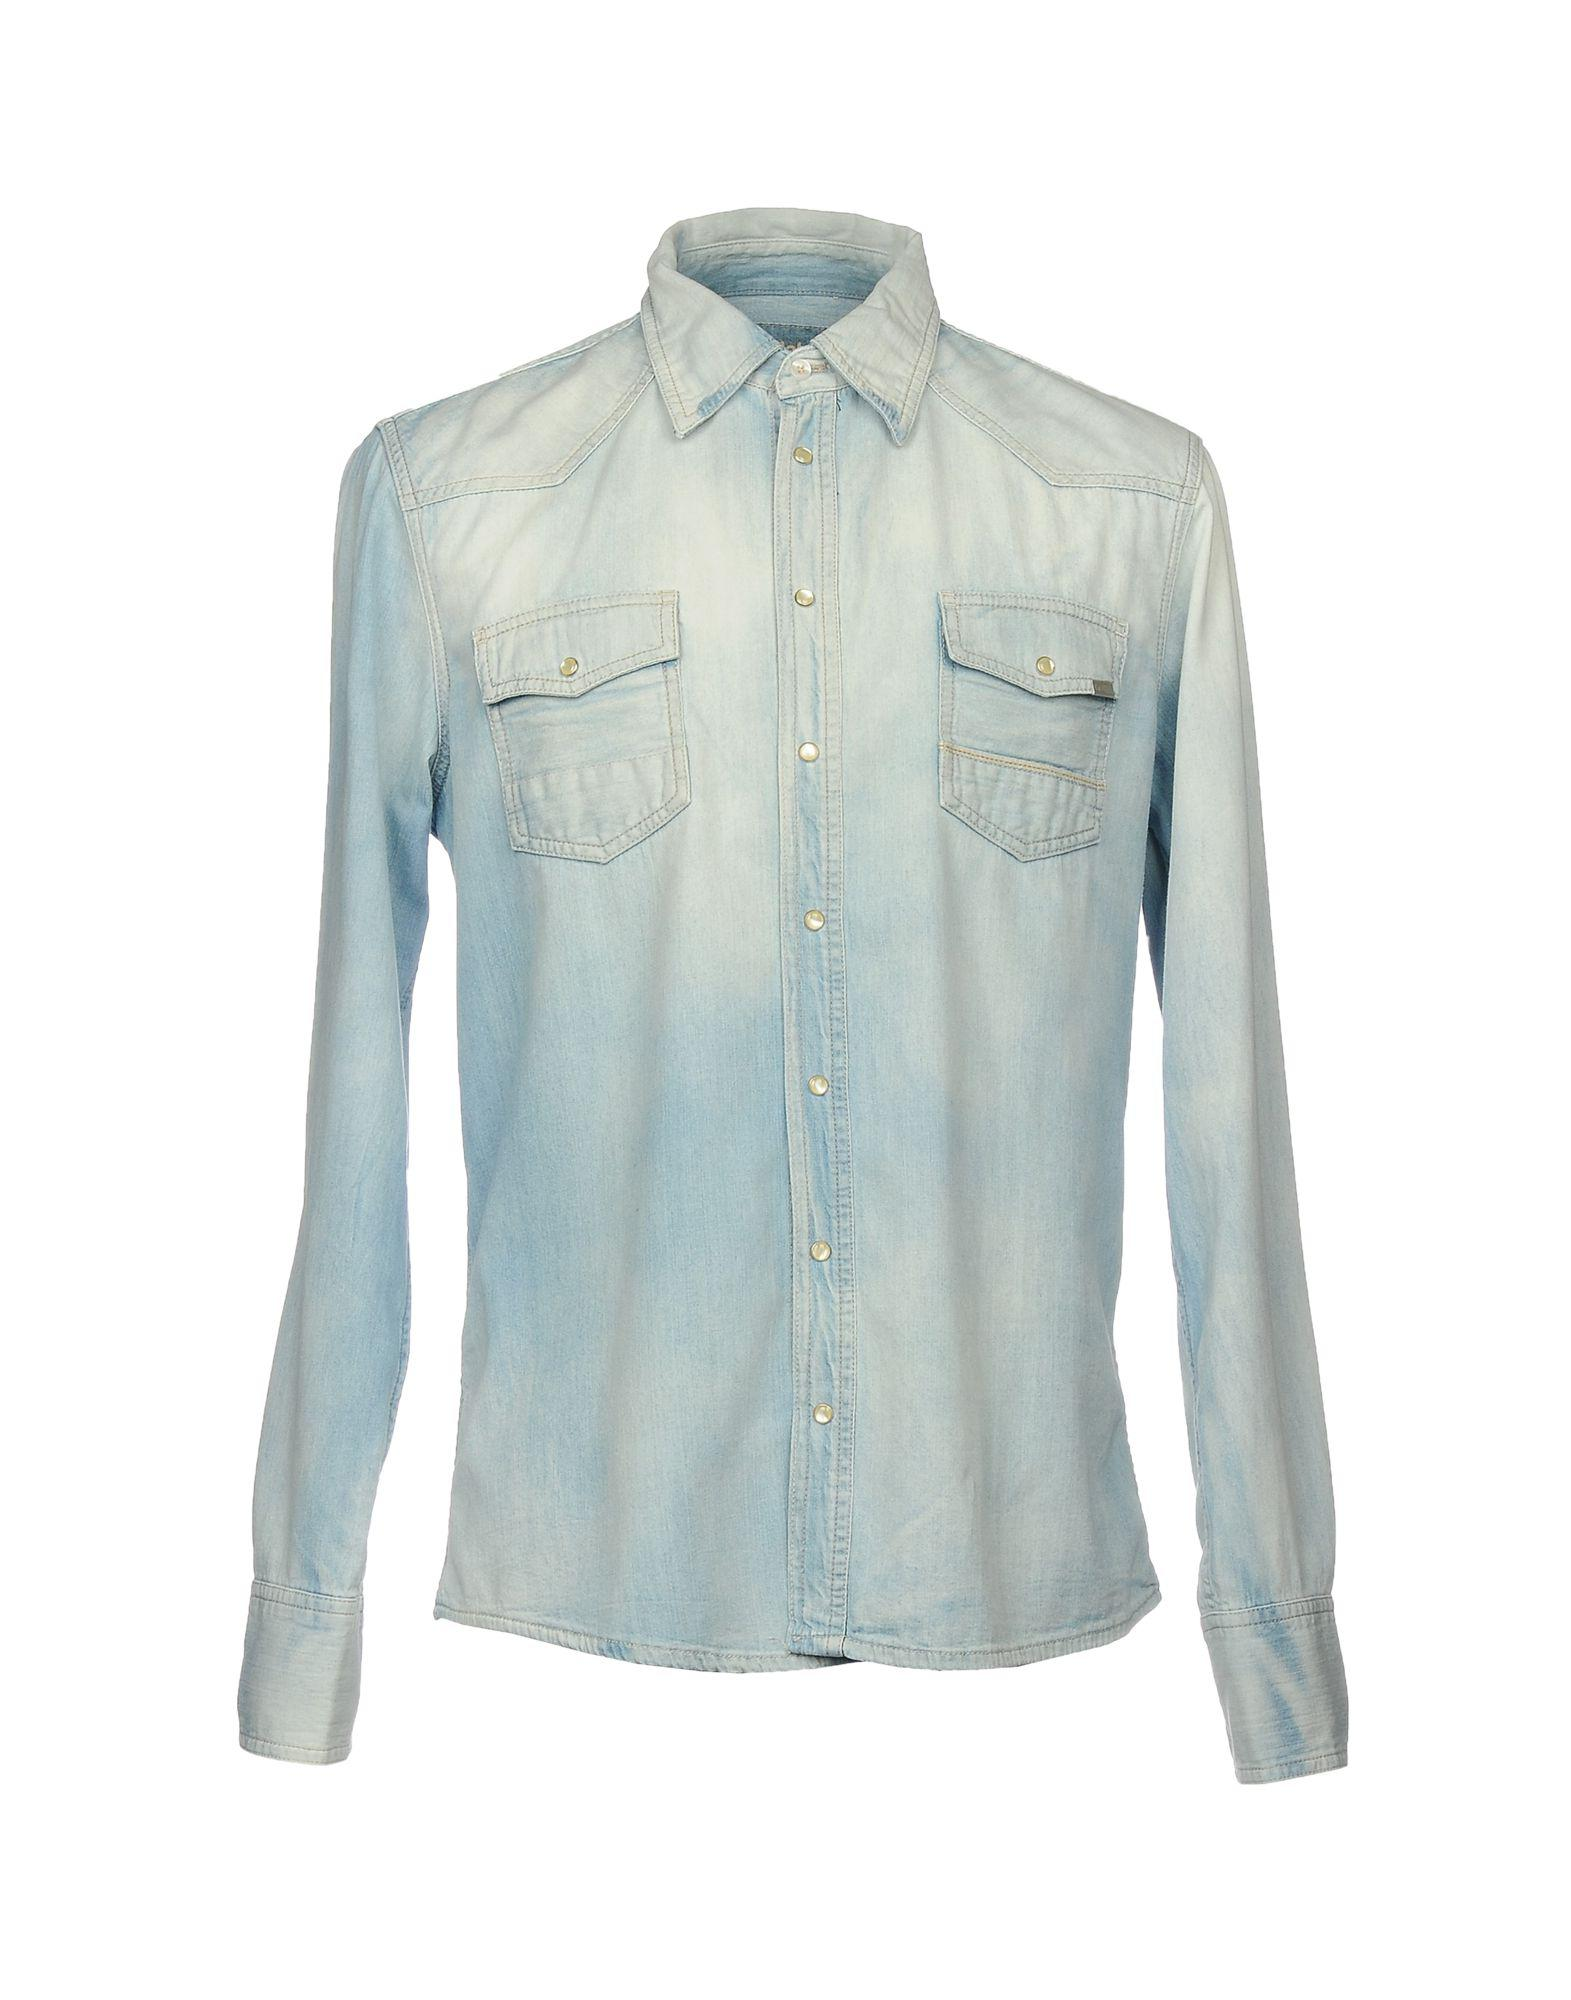 DENIM - Denim shirts Care Label Clearance Extremely Cheap Sale Fashionable Marketable Cheap Online Clearance Great Deals 8XYpDk4f0